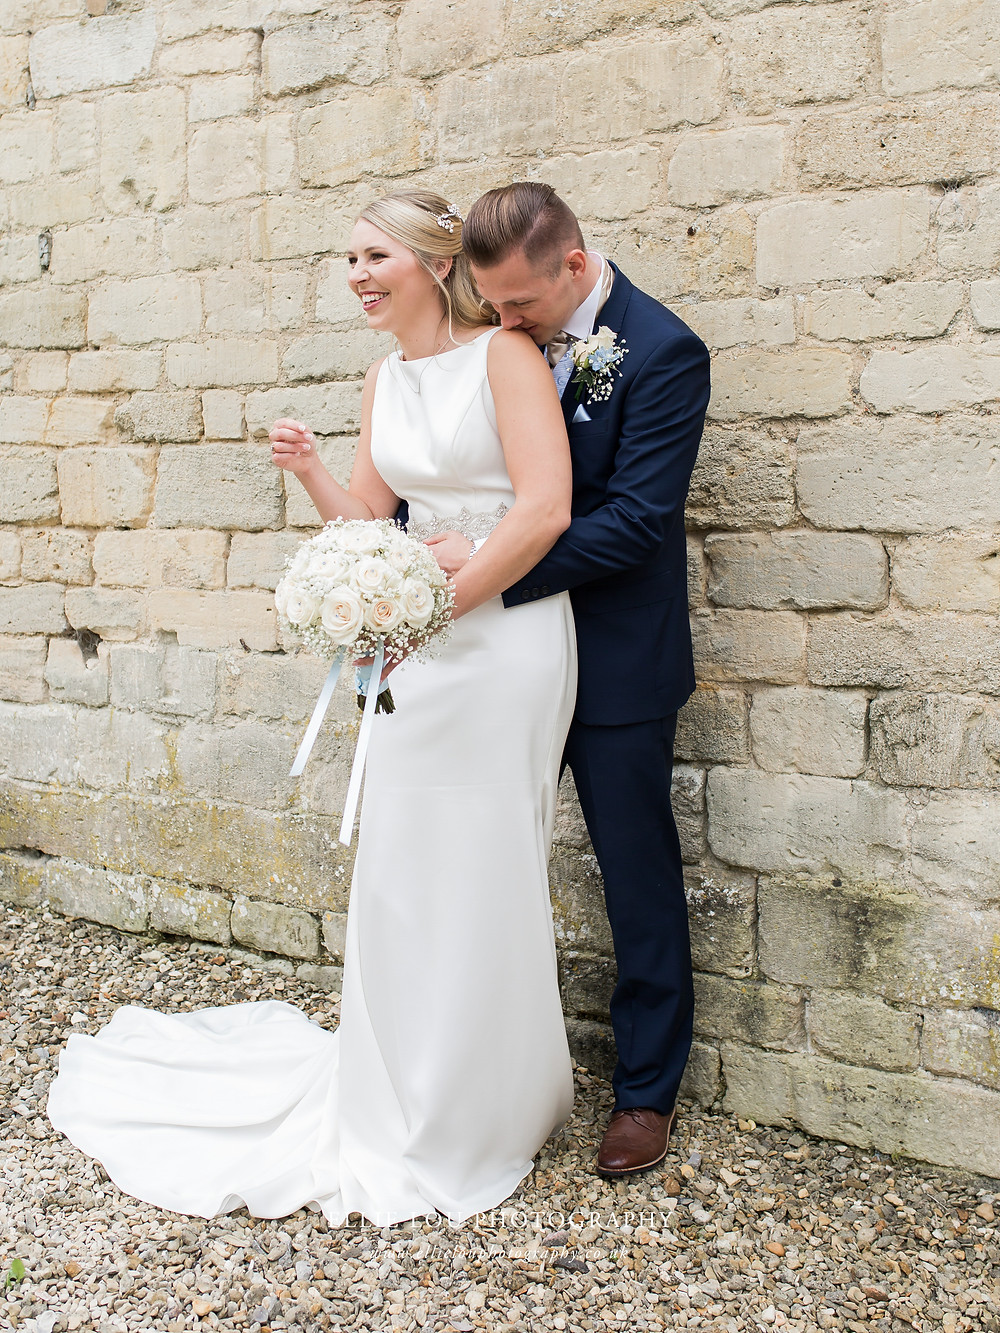 Wedding Photography - Eastington Park | Bristol & Somerset Wedding Photographer | Ellie Lou Photography